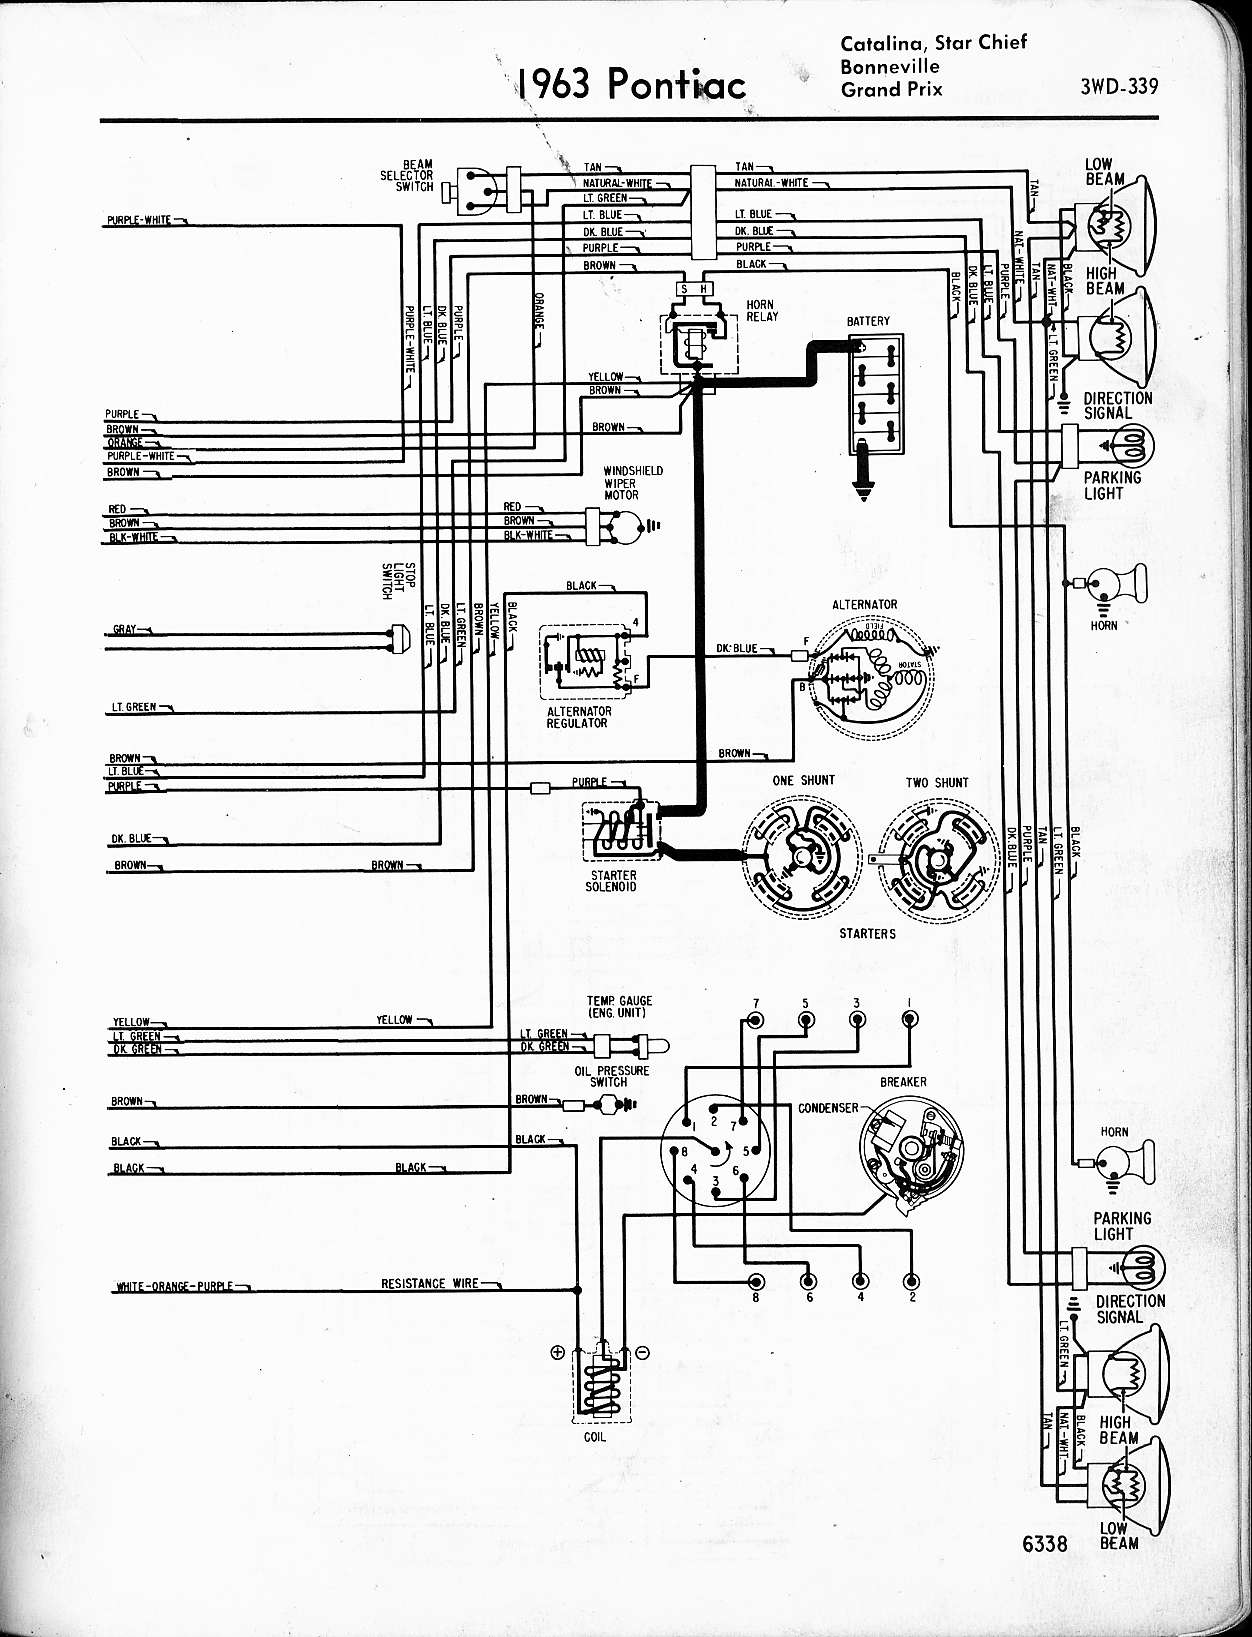 1963 pontiac wiring diagram wire center u2022 rh aktivagroup co